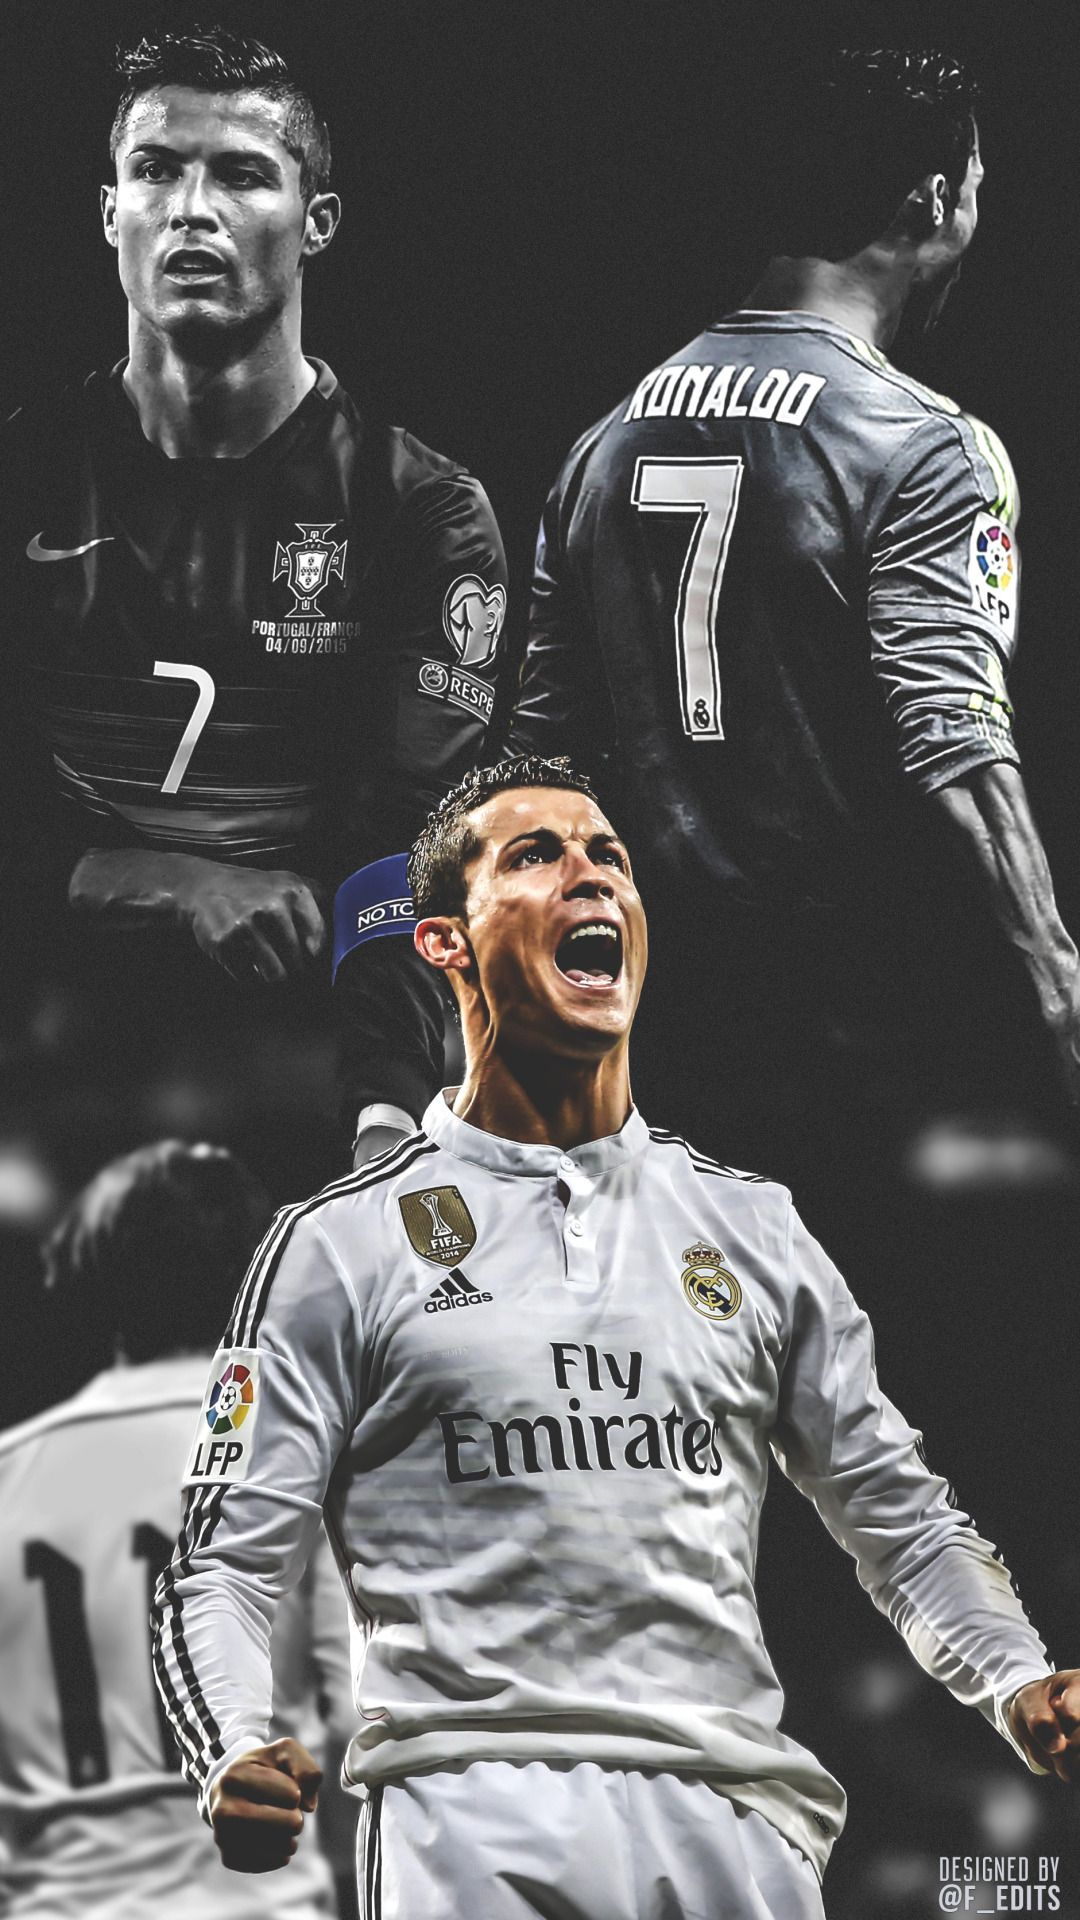 Cristiano ronaldo iphone wallpaper cr7 cristiano - C ronaldo wallpaper portugal ...